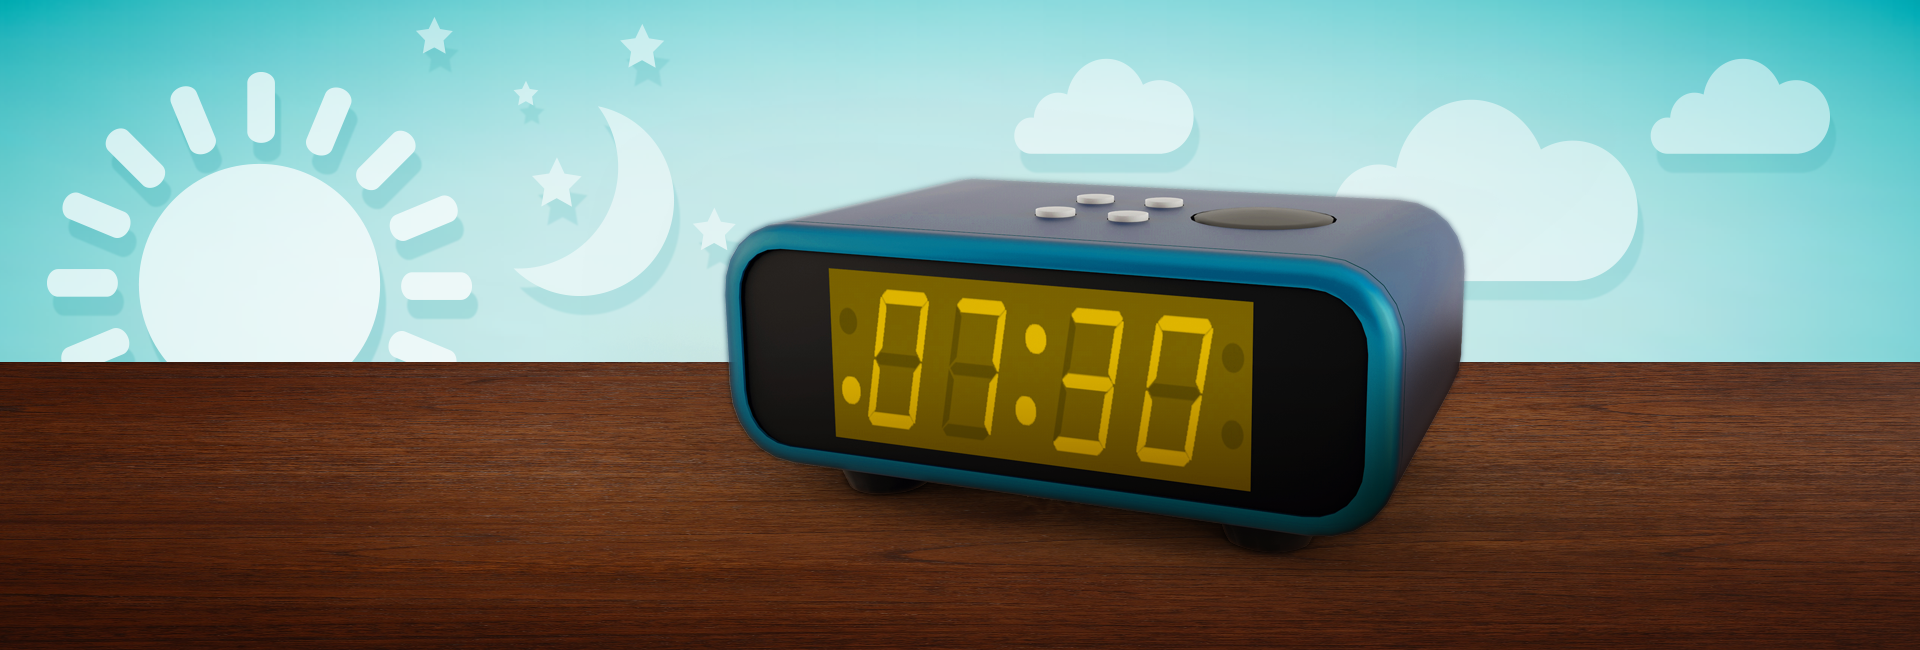 4 tips to help you get Daylight Savings right